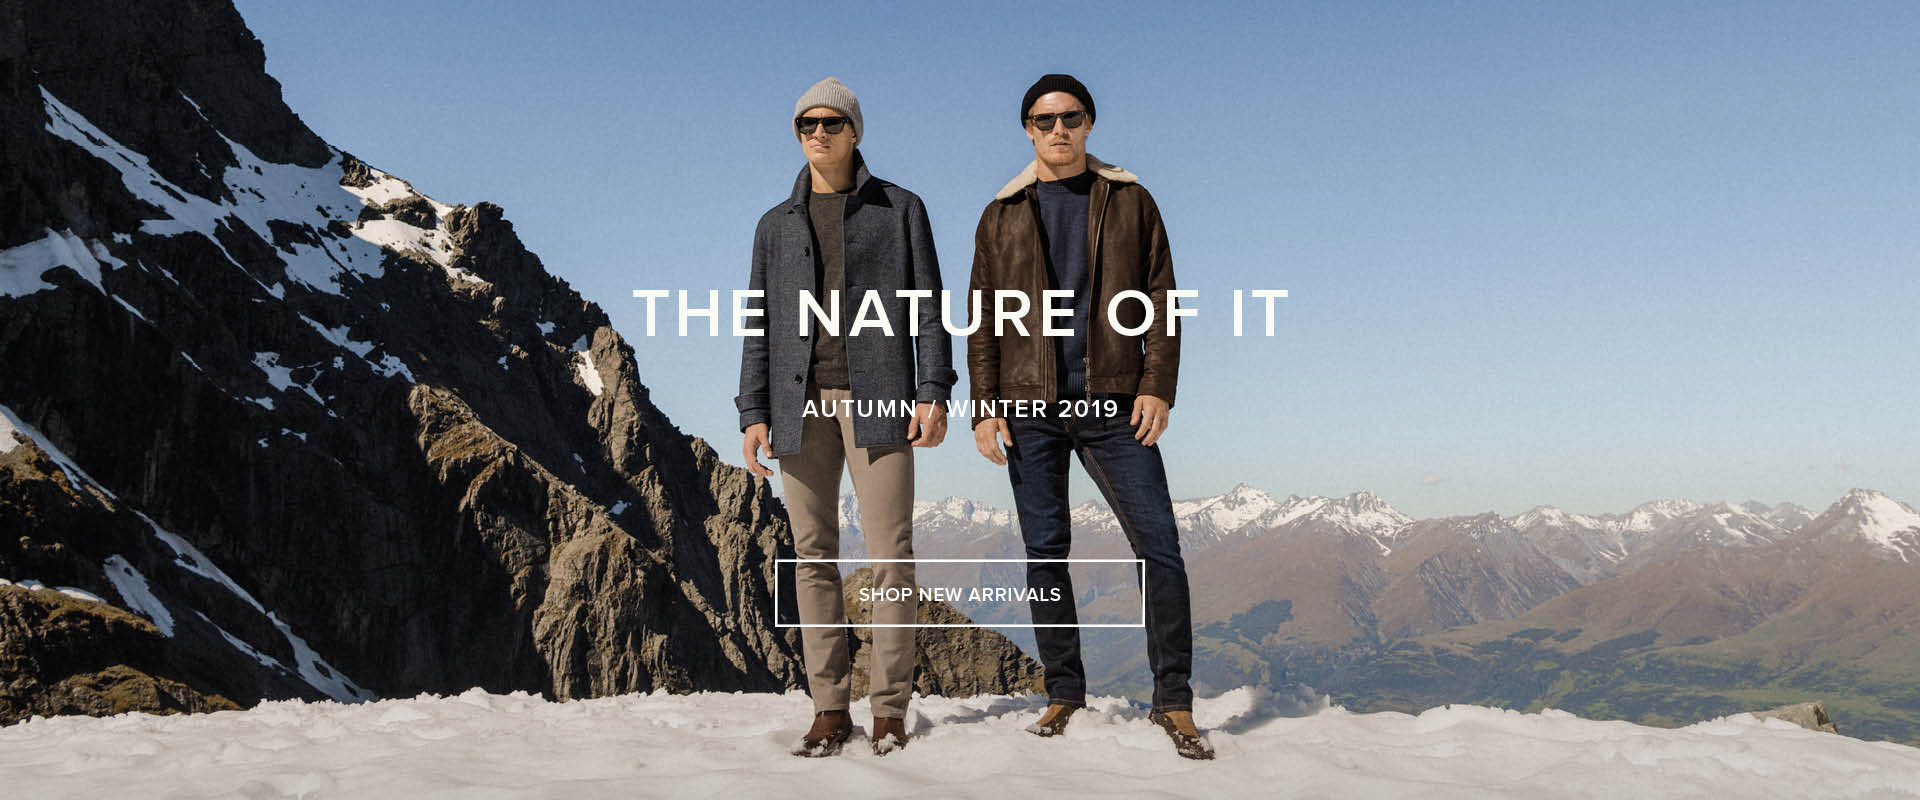 The Nature Of It. Autumn/Winter 2019 - Shop New Arrivals